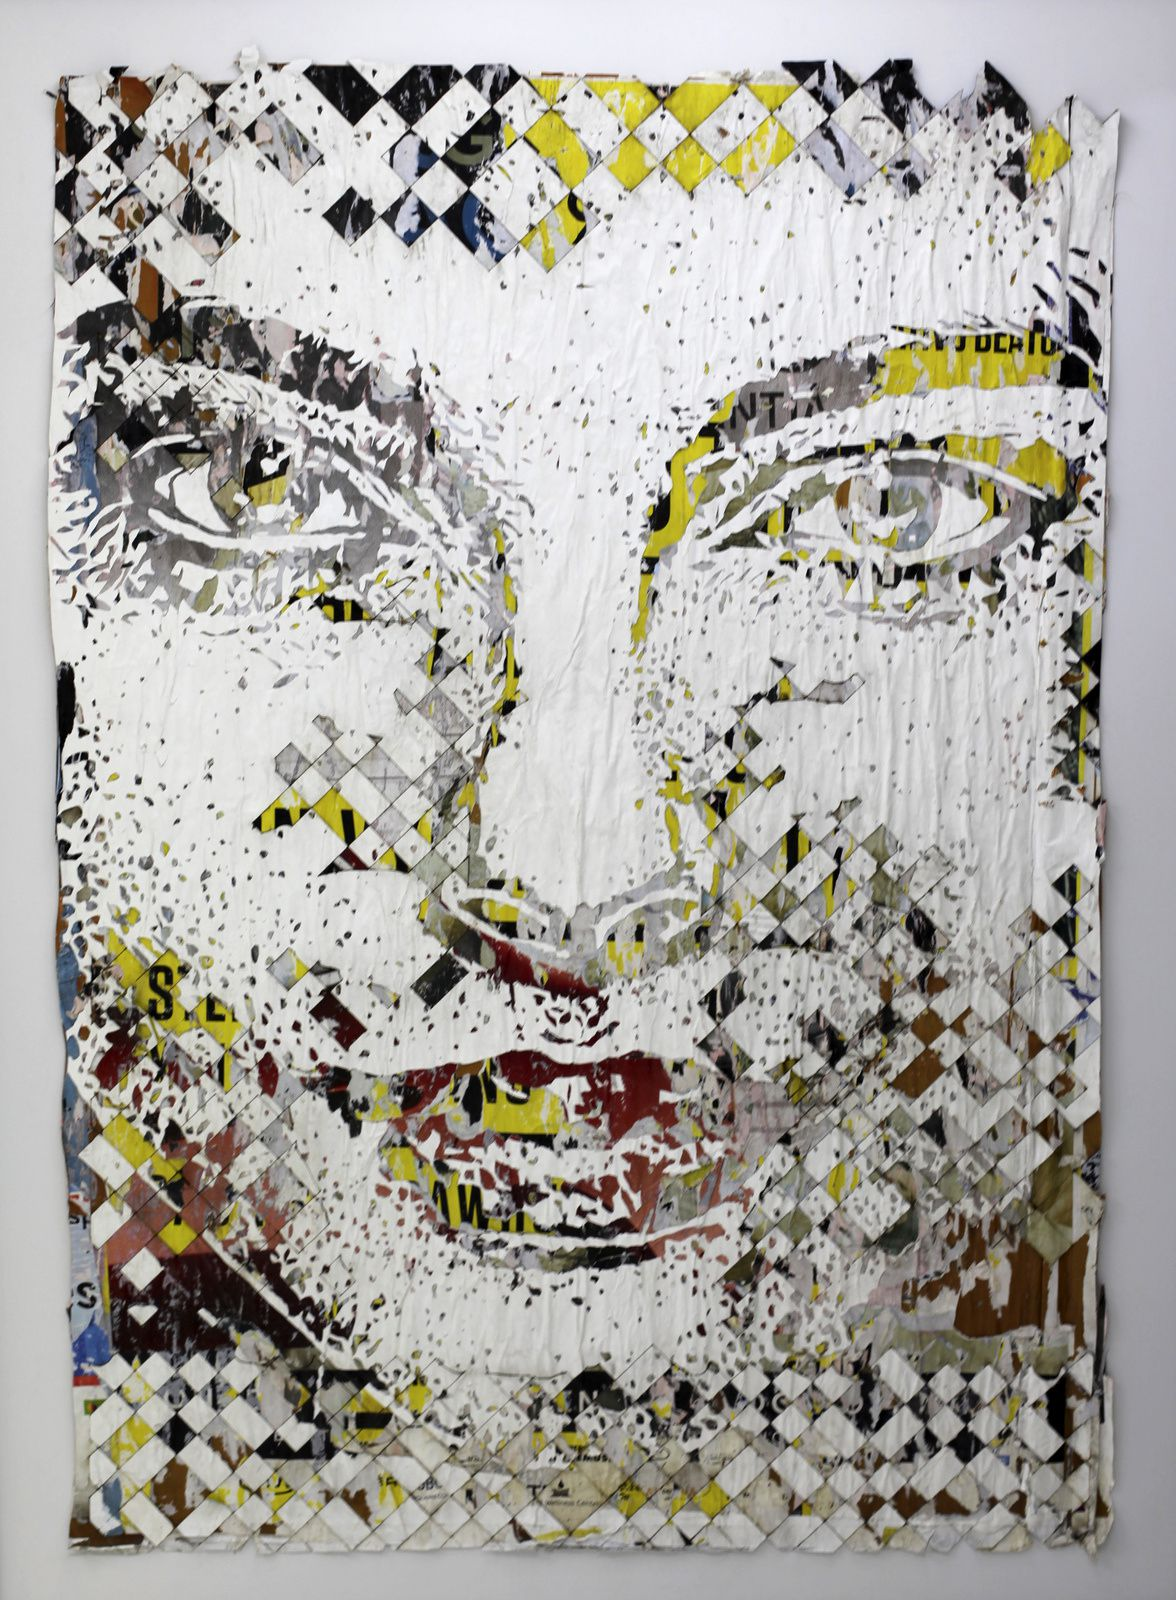 """Laminous #1"", 2018  de VHILS - Courtesy de l'artiste et la galerie Magda Danysz © Photo Éric Simon"